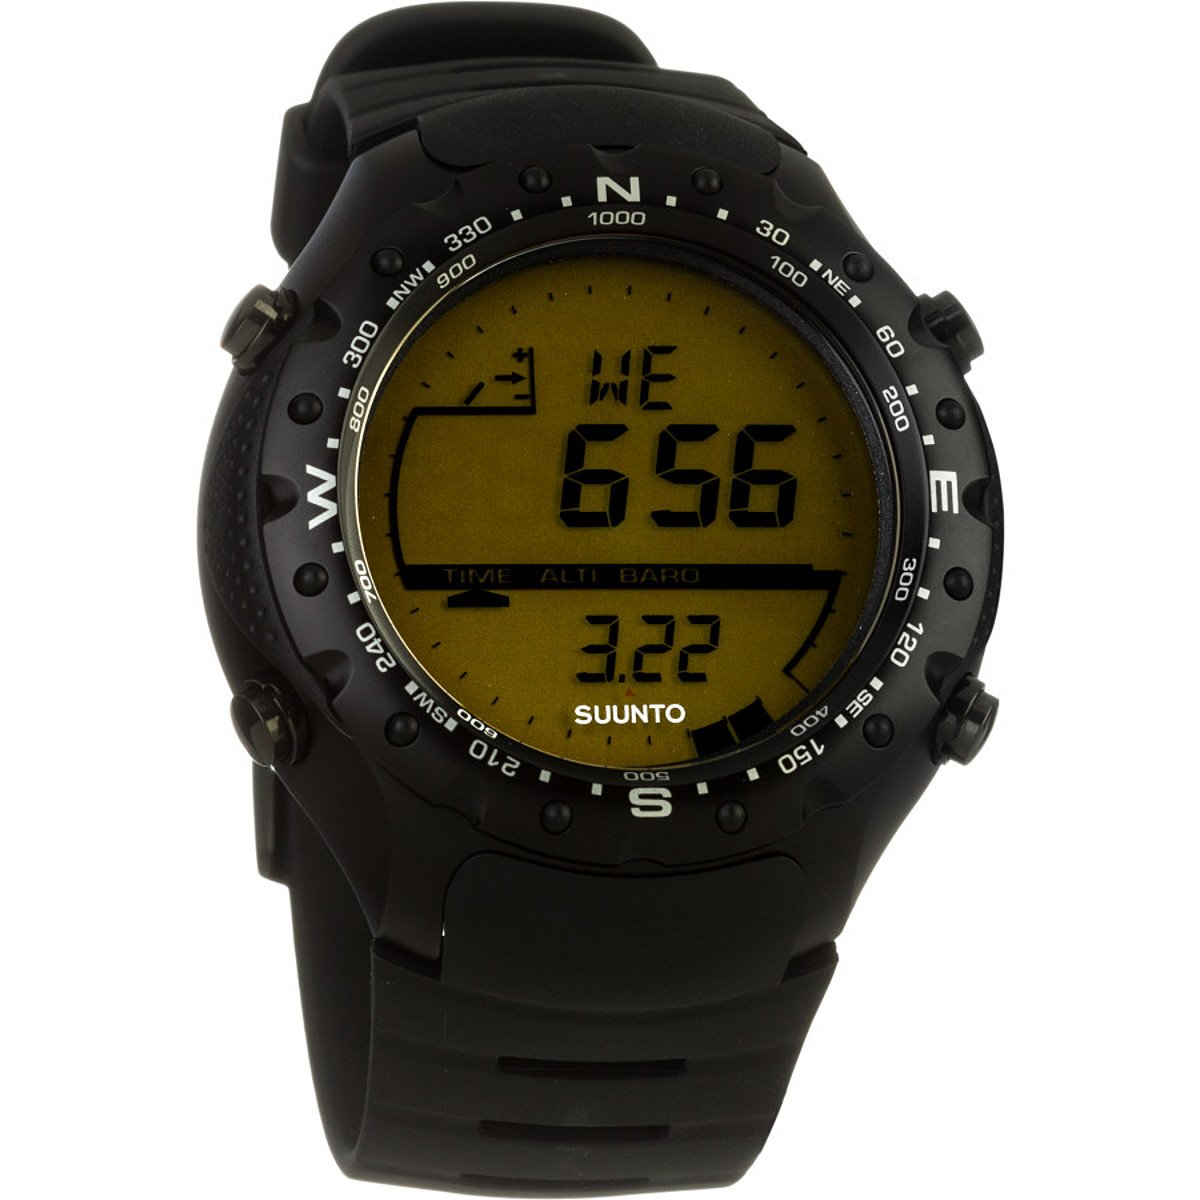 Suunto Spartan Ruggedized Watch